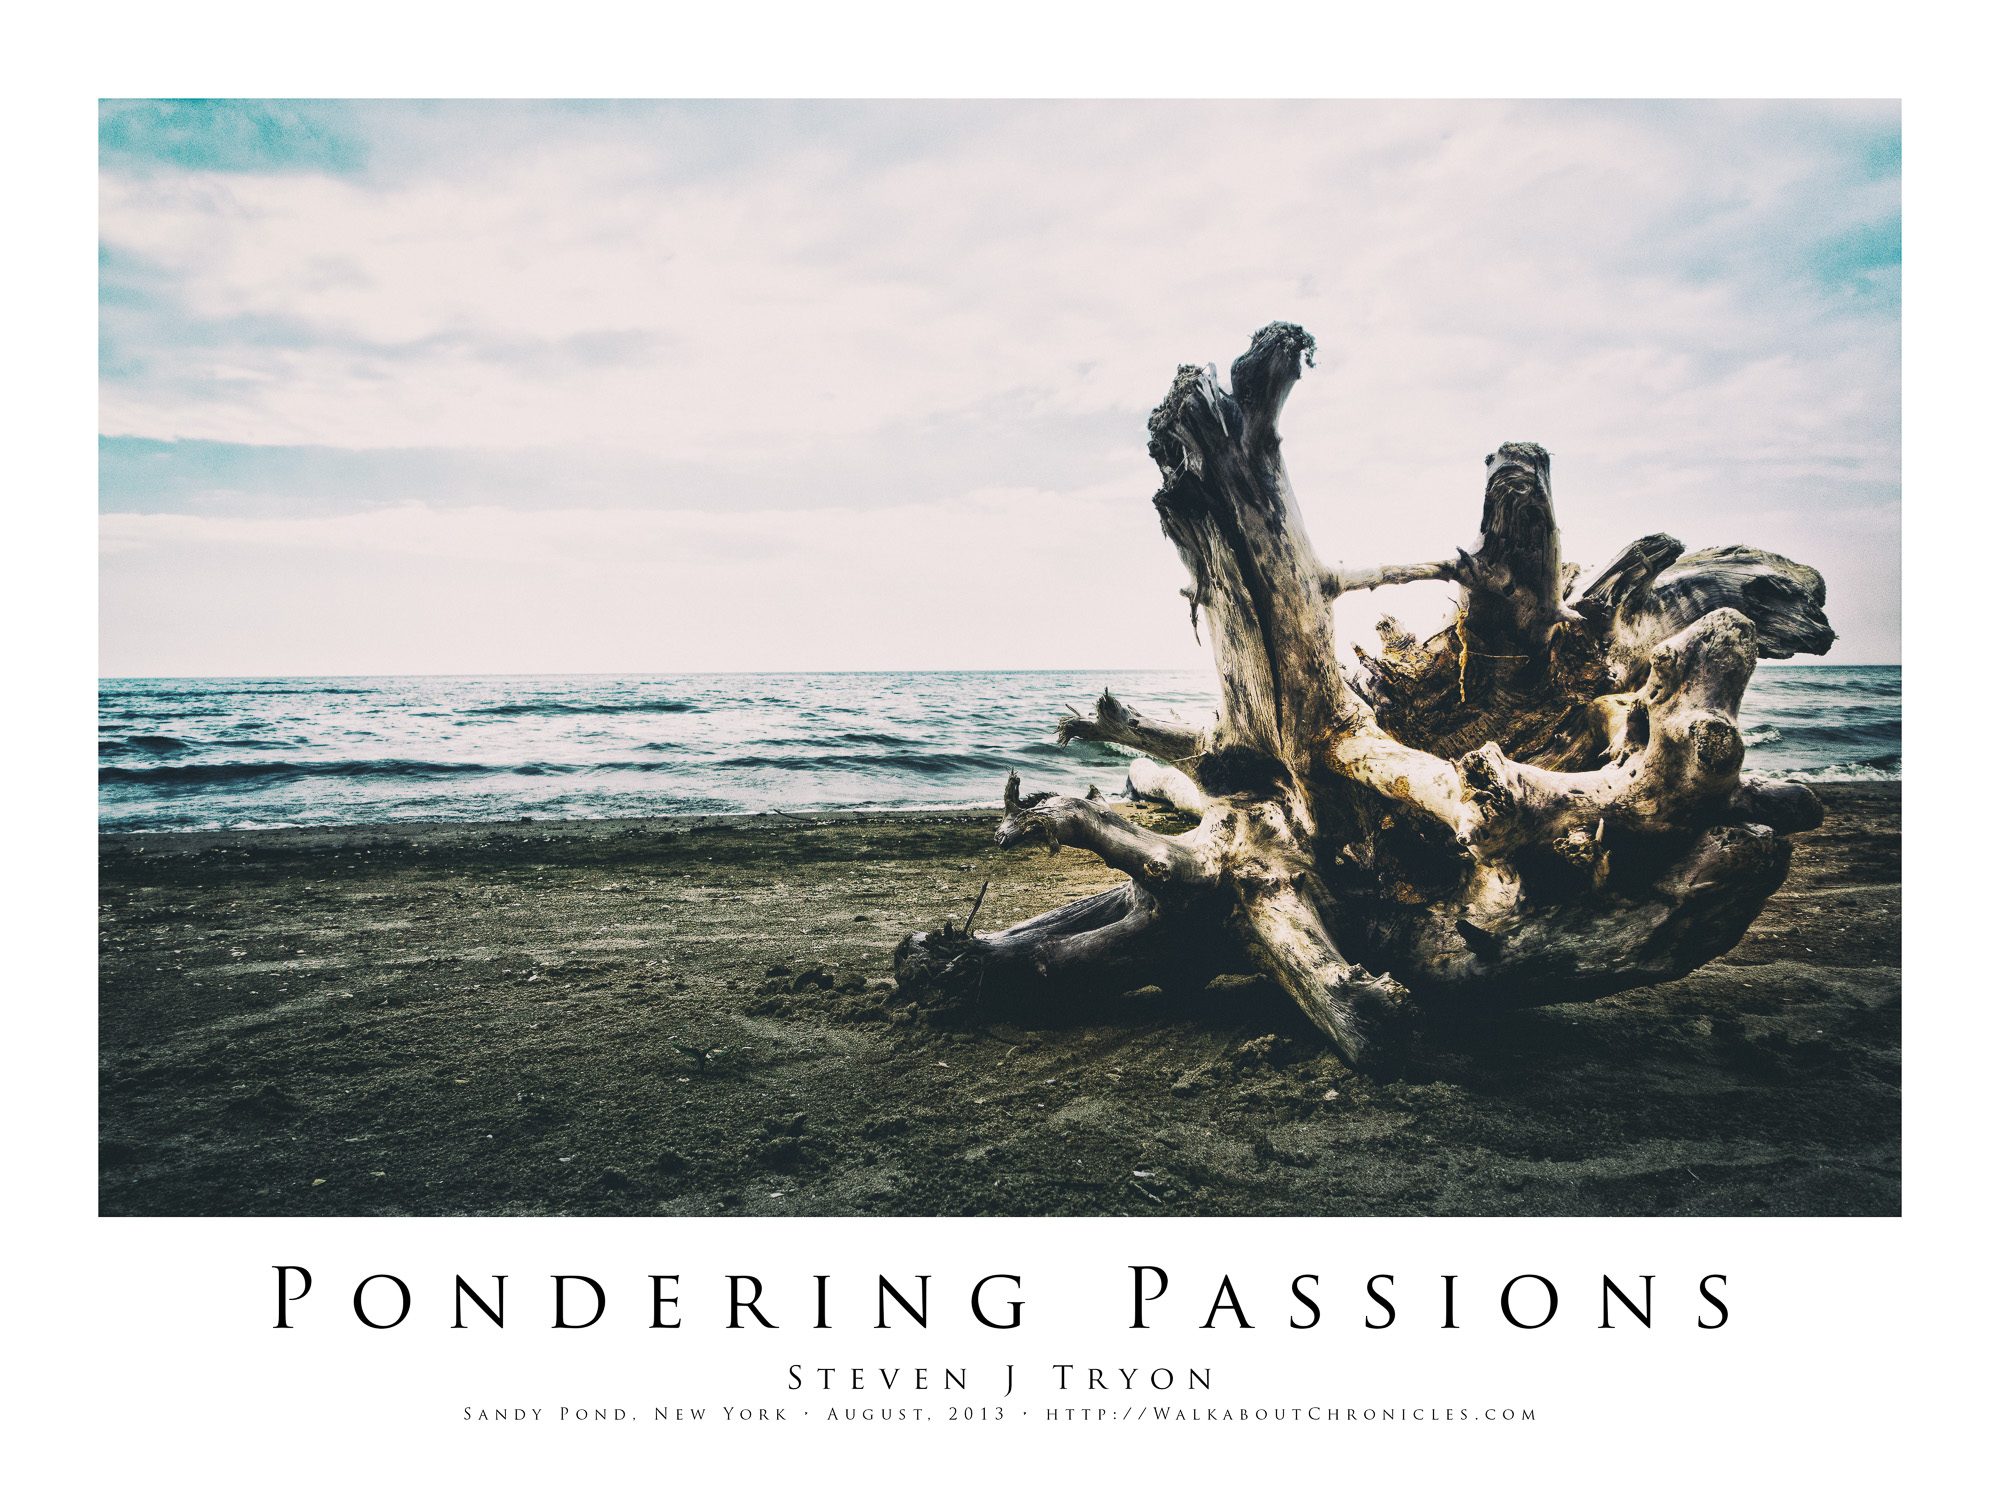 Pondering Passions